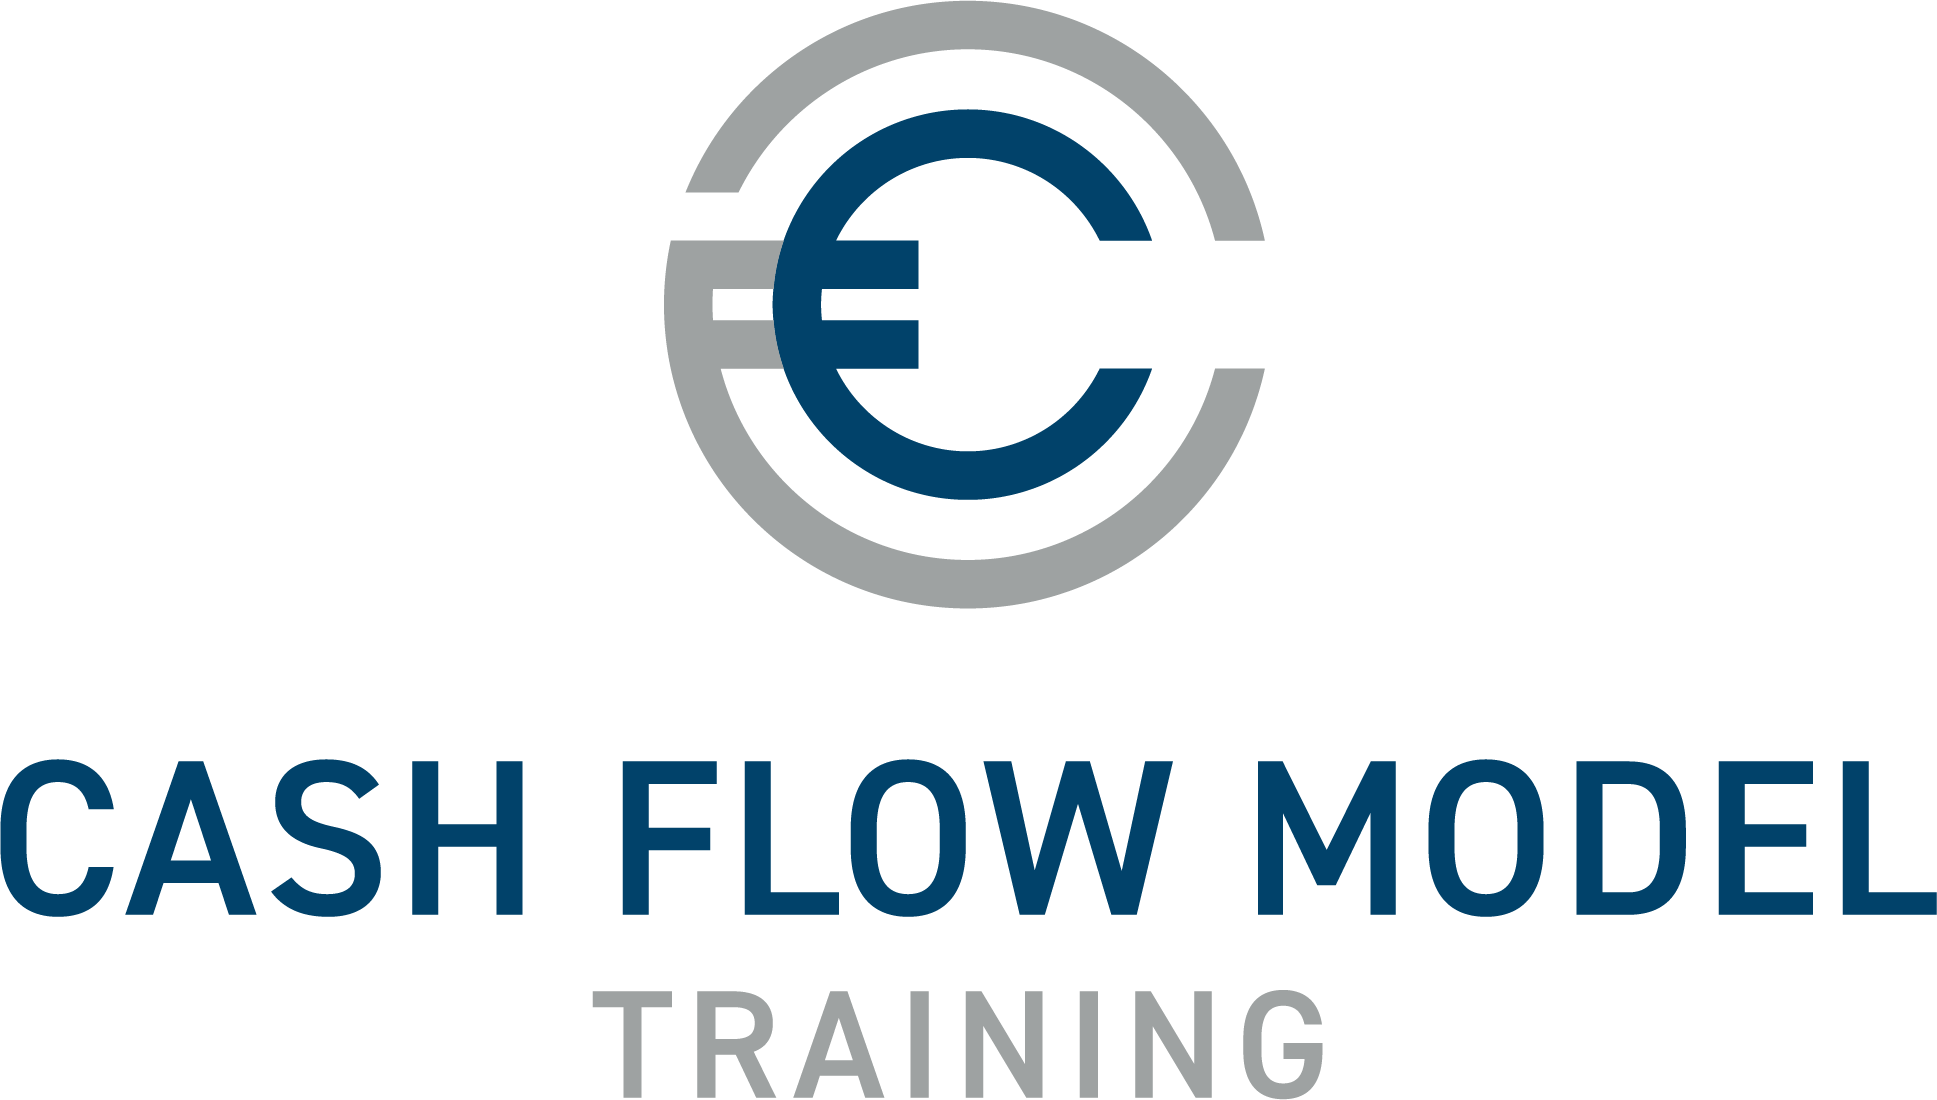 Cash Flow Model Training